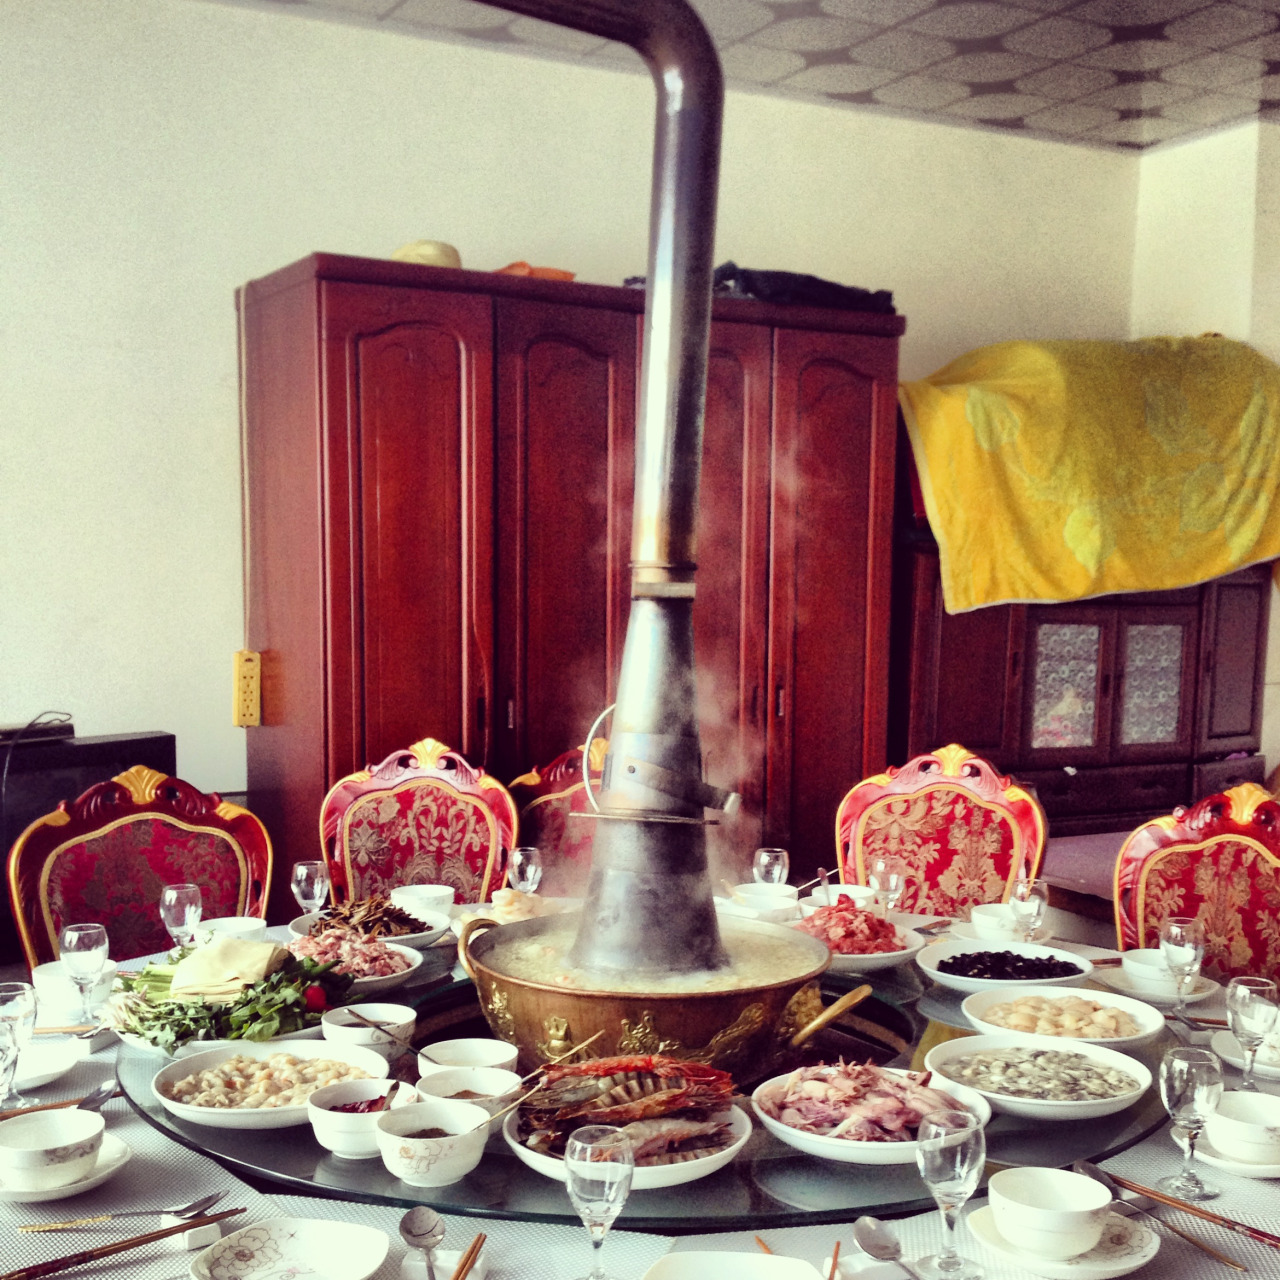 Big family table with the hot pot in the middle